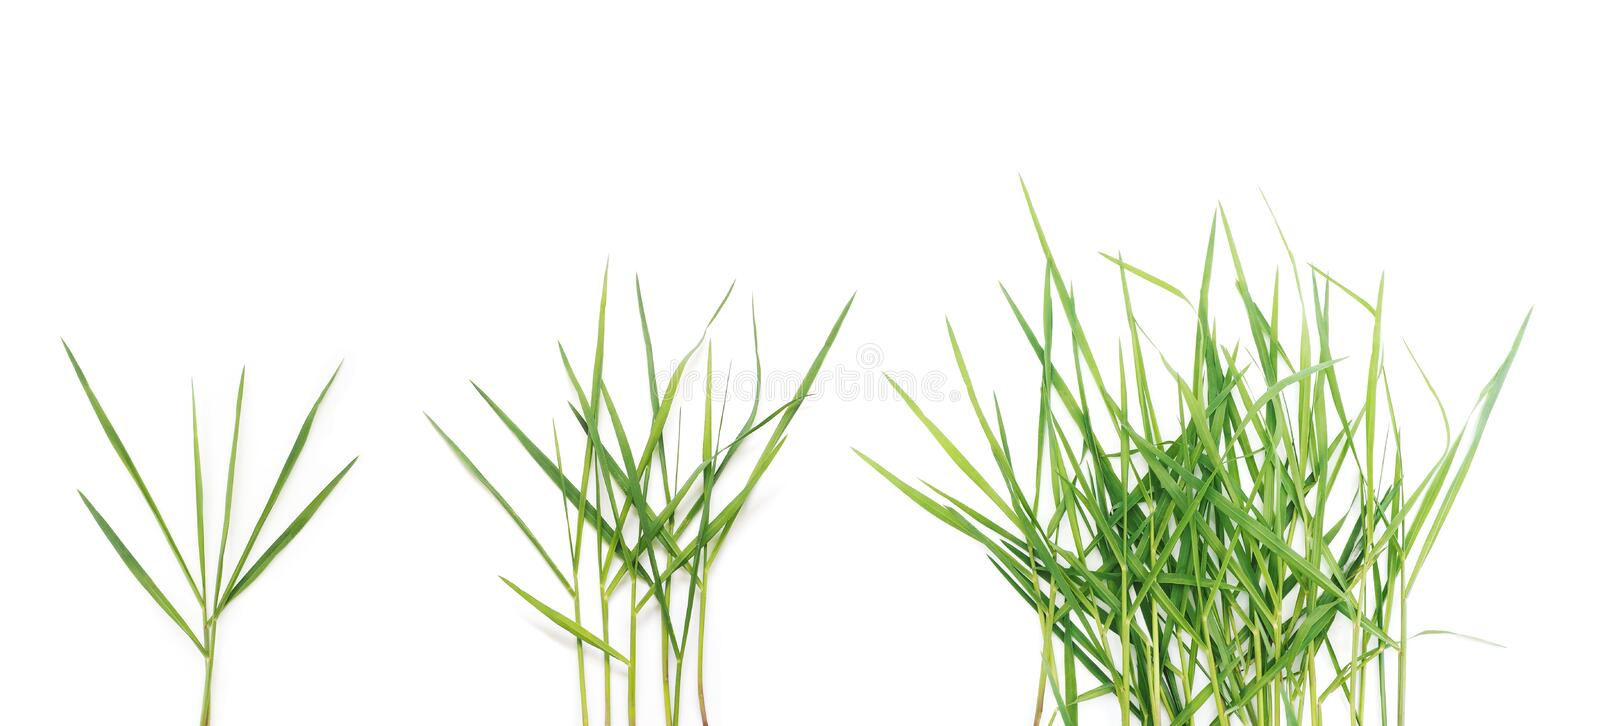 Long blades of green grass over white background. royalty free stock photo